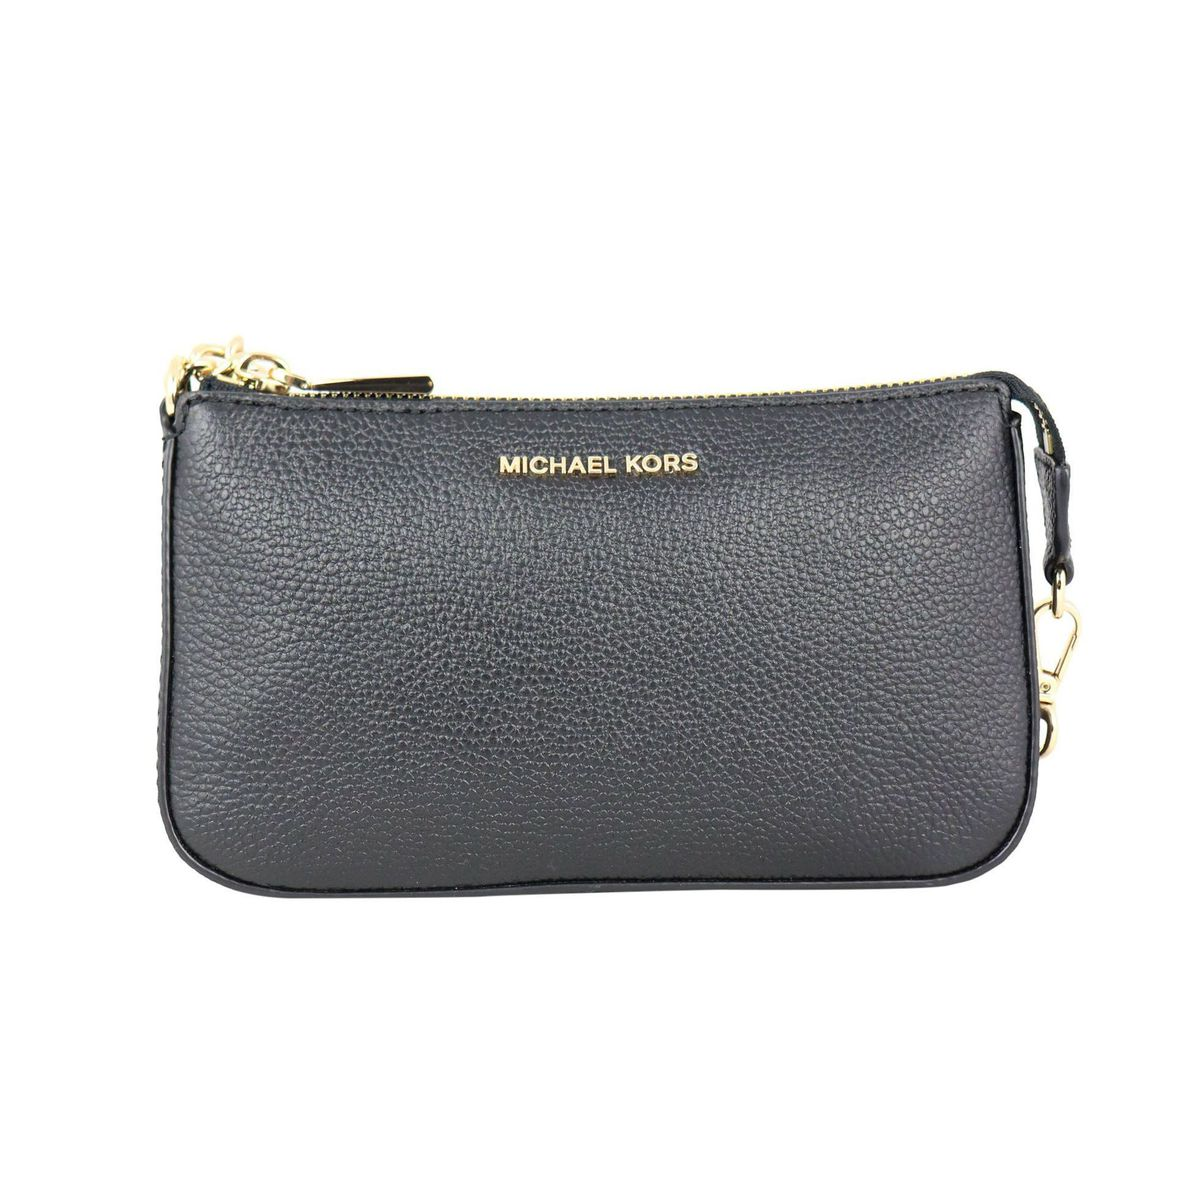 Mini textured leather bag with chain shoulder strap Black Michael Kors